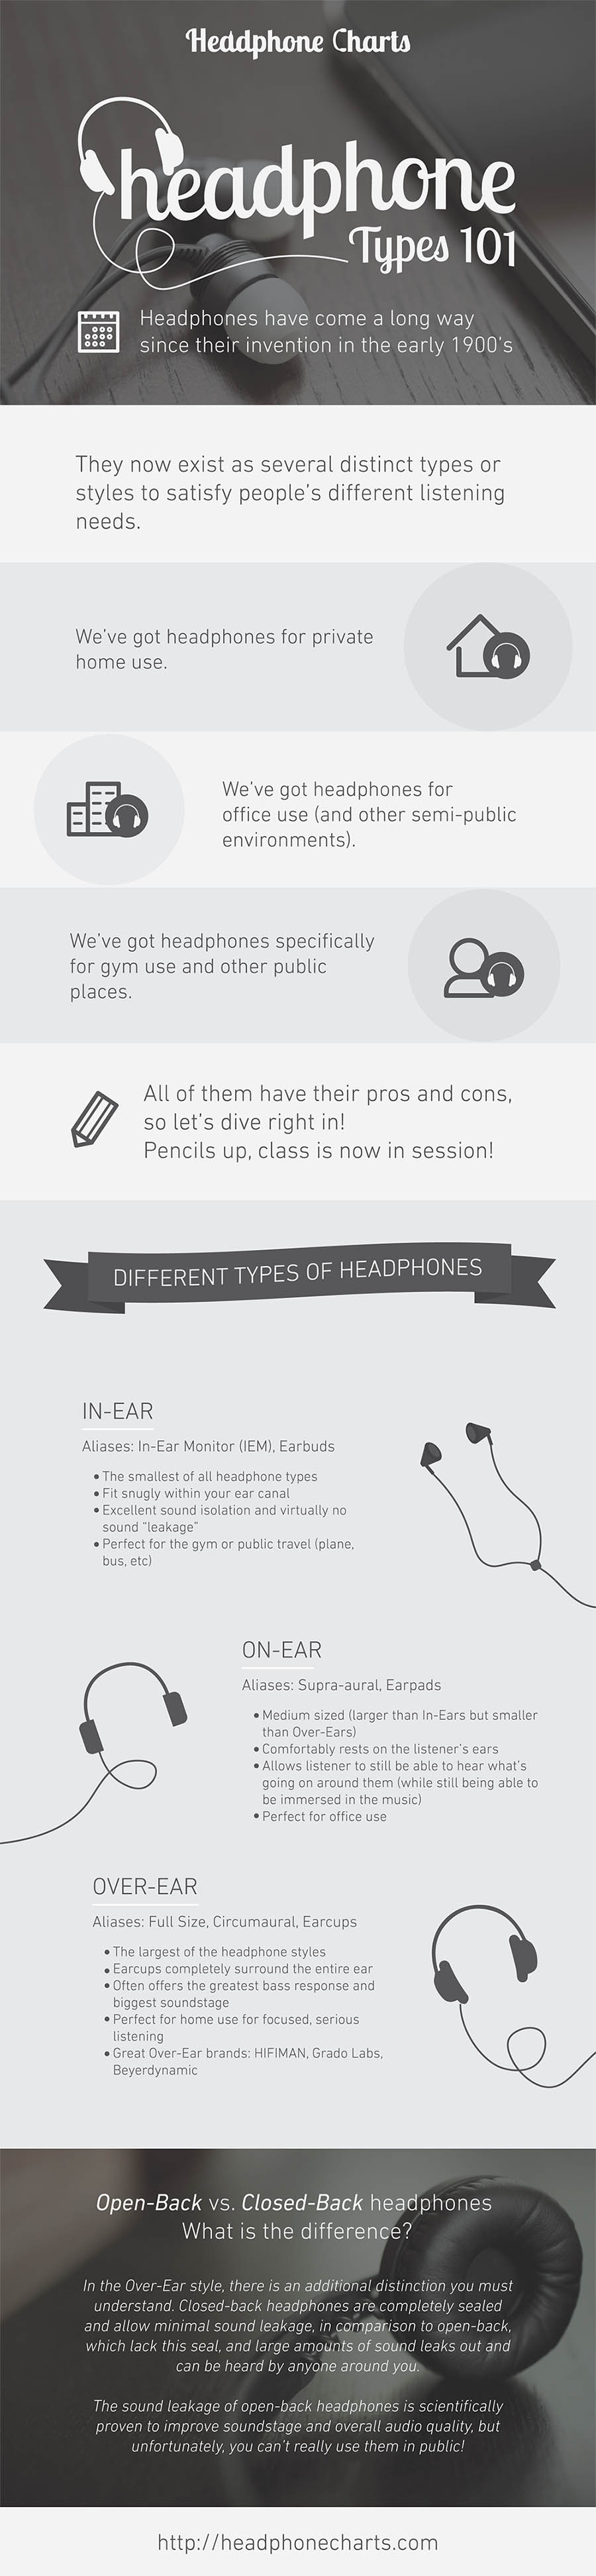 headphone-types-infographic